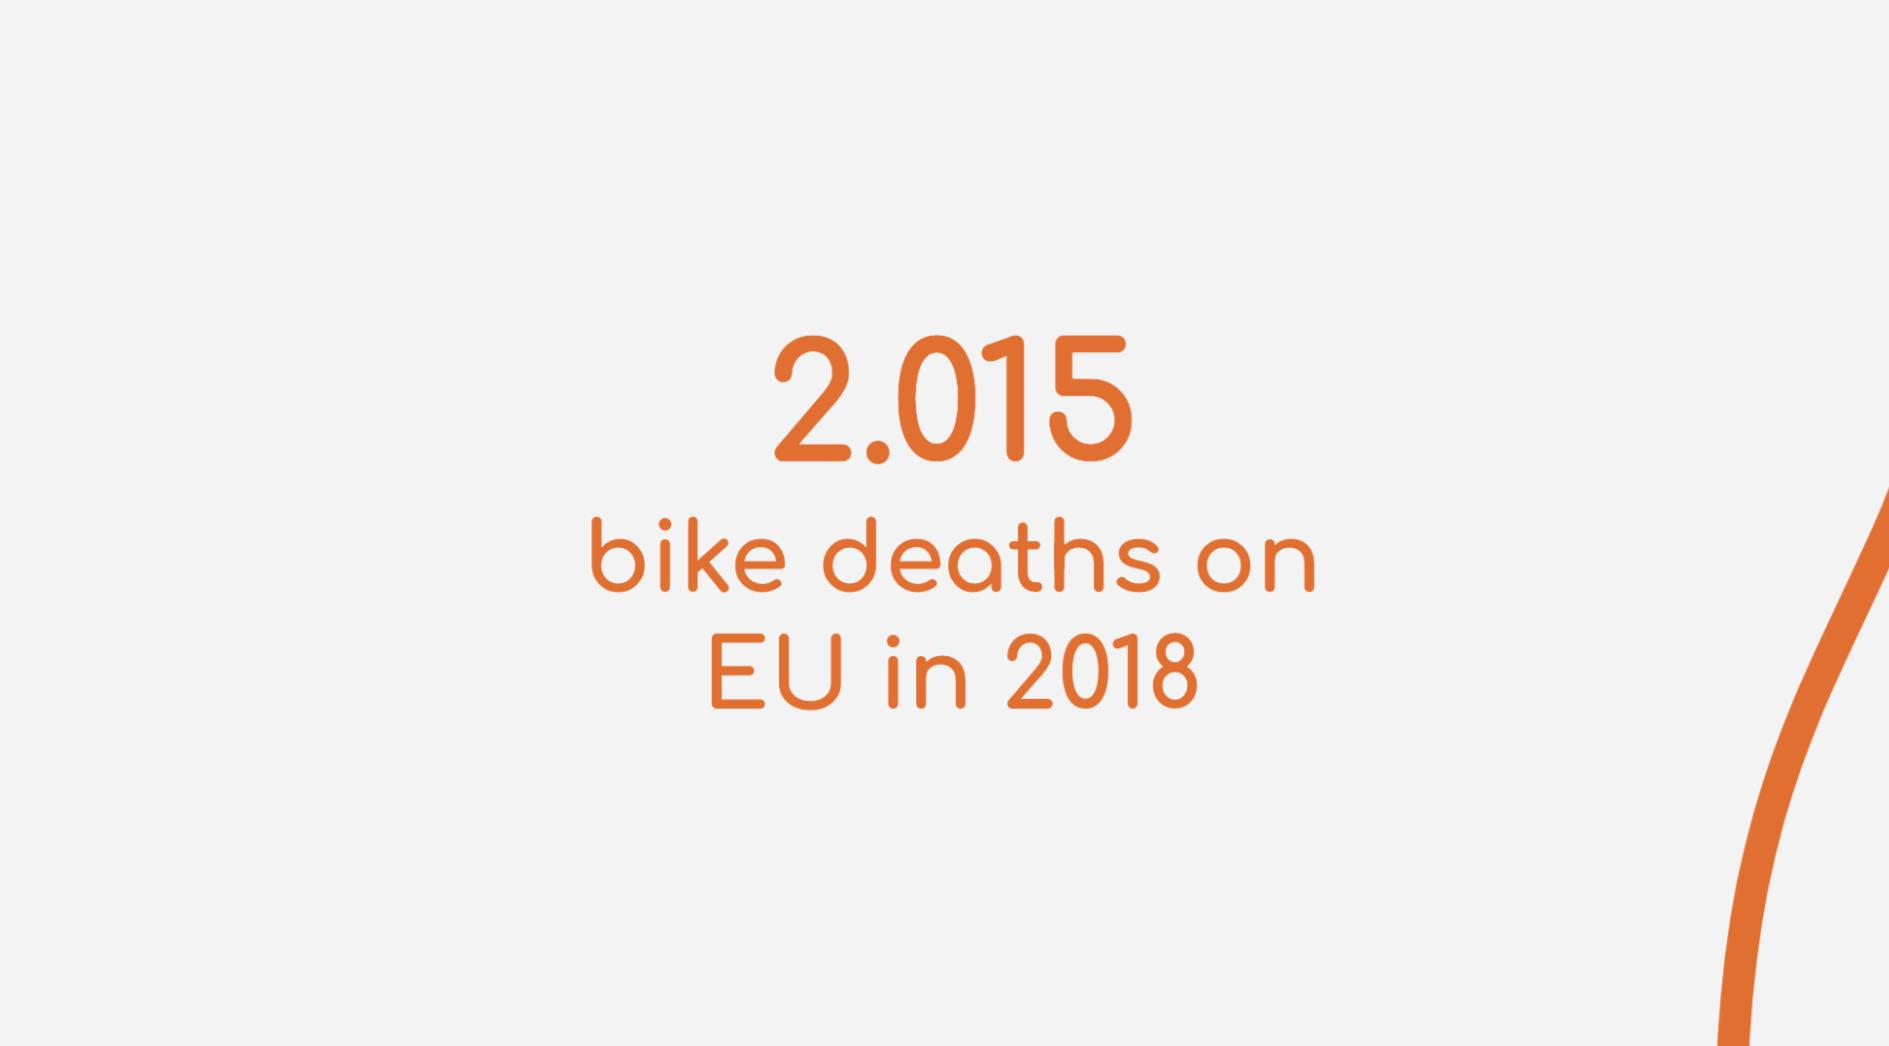 Accidents and Deaths Caused by Cycling